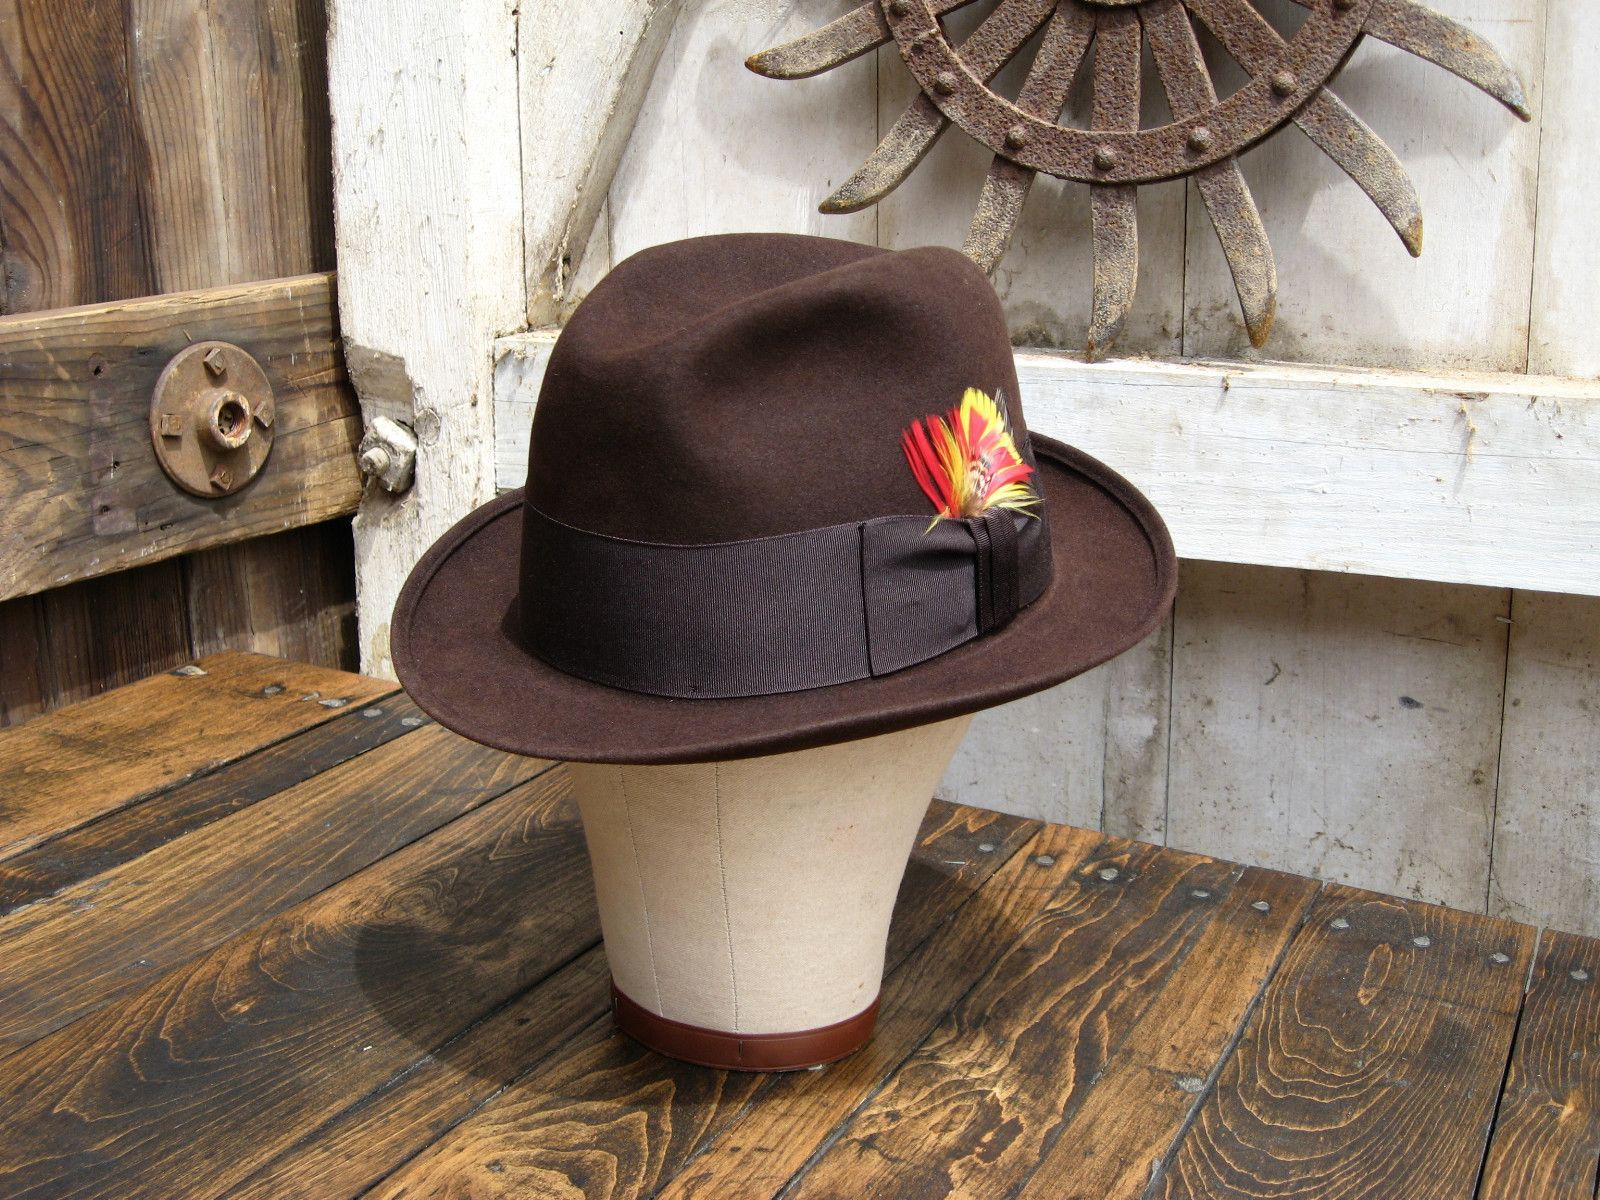 Dating vintage stetson hats